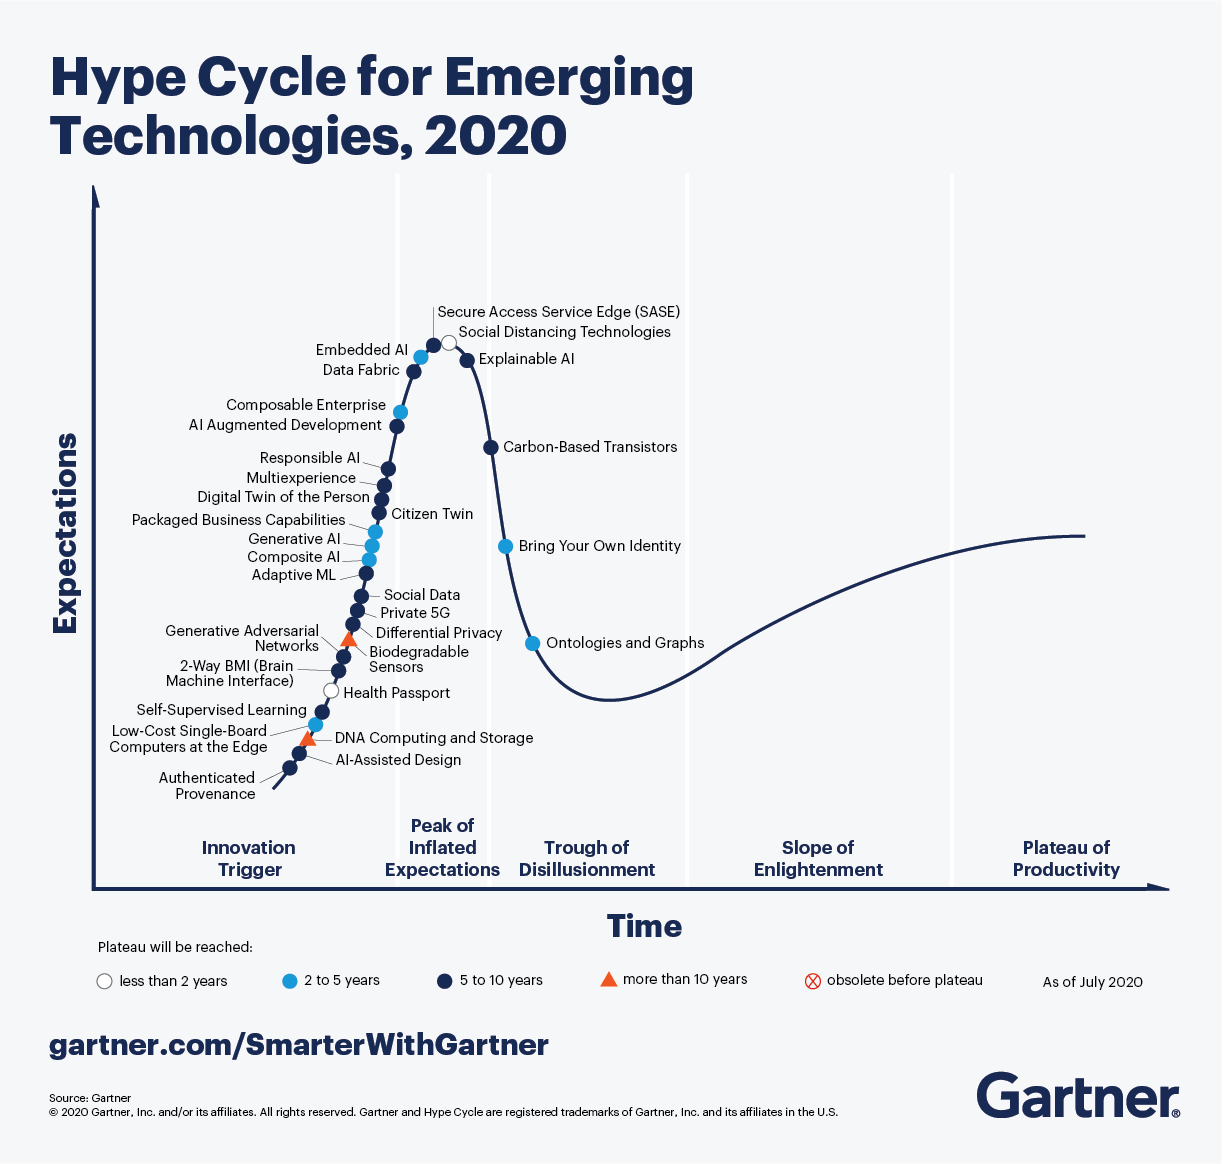 Hype Cycle for Emerging Technologies 2020